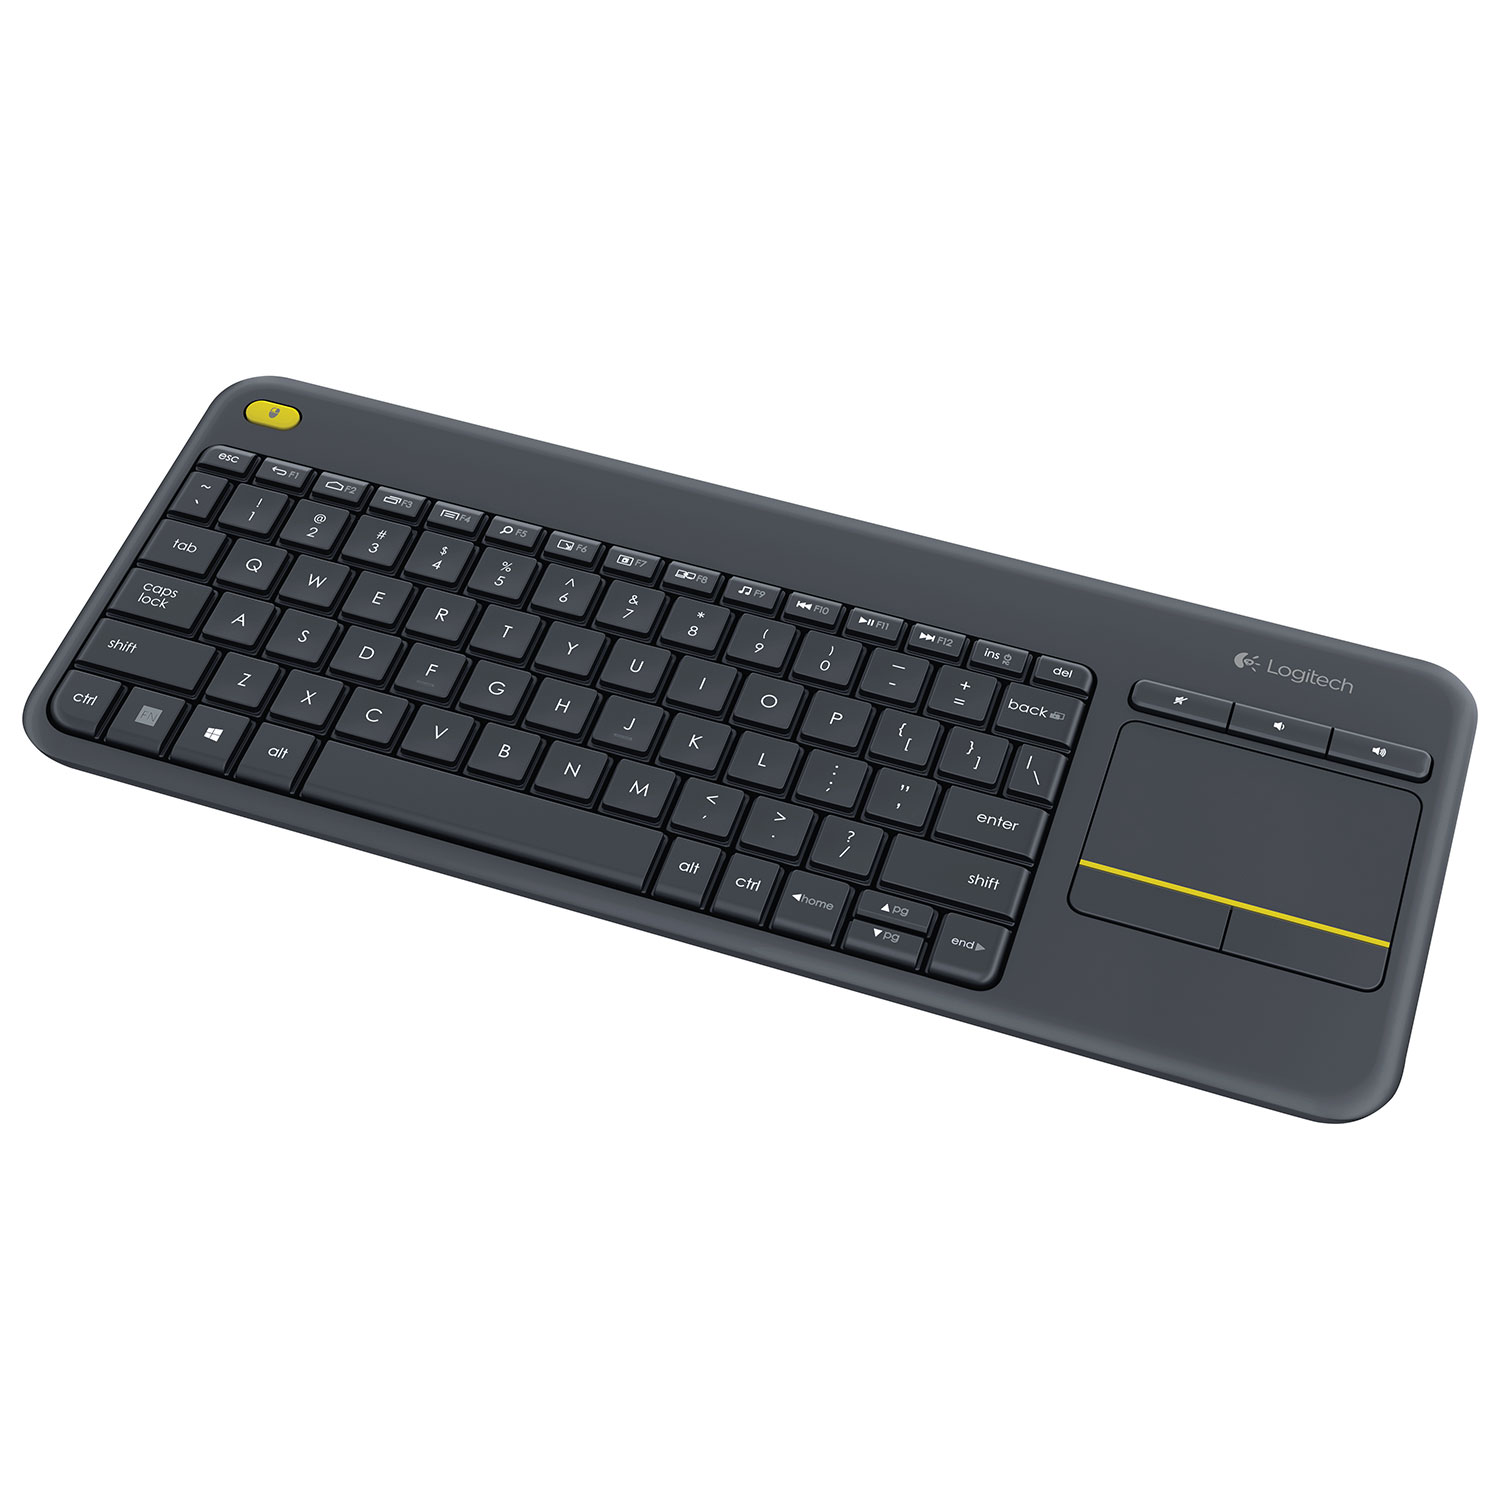 Logitech Touch Plus Wireless Keyboard K400 Best Buy Canada